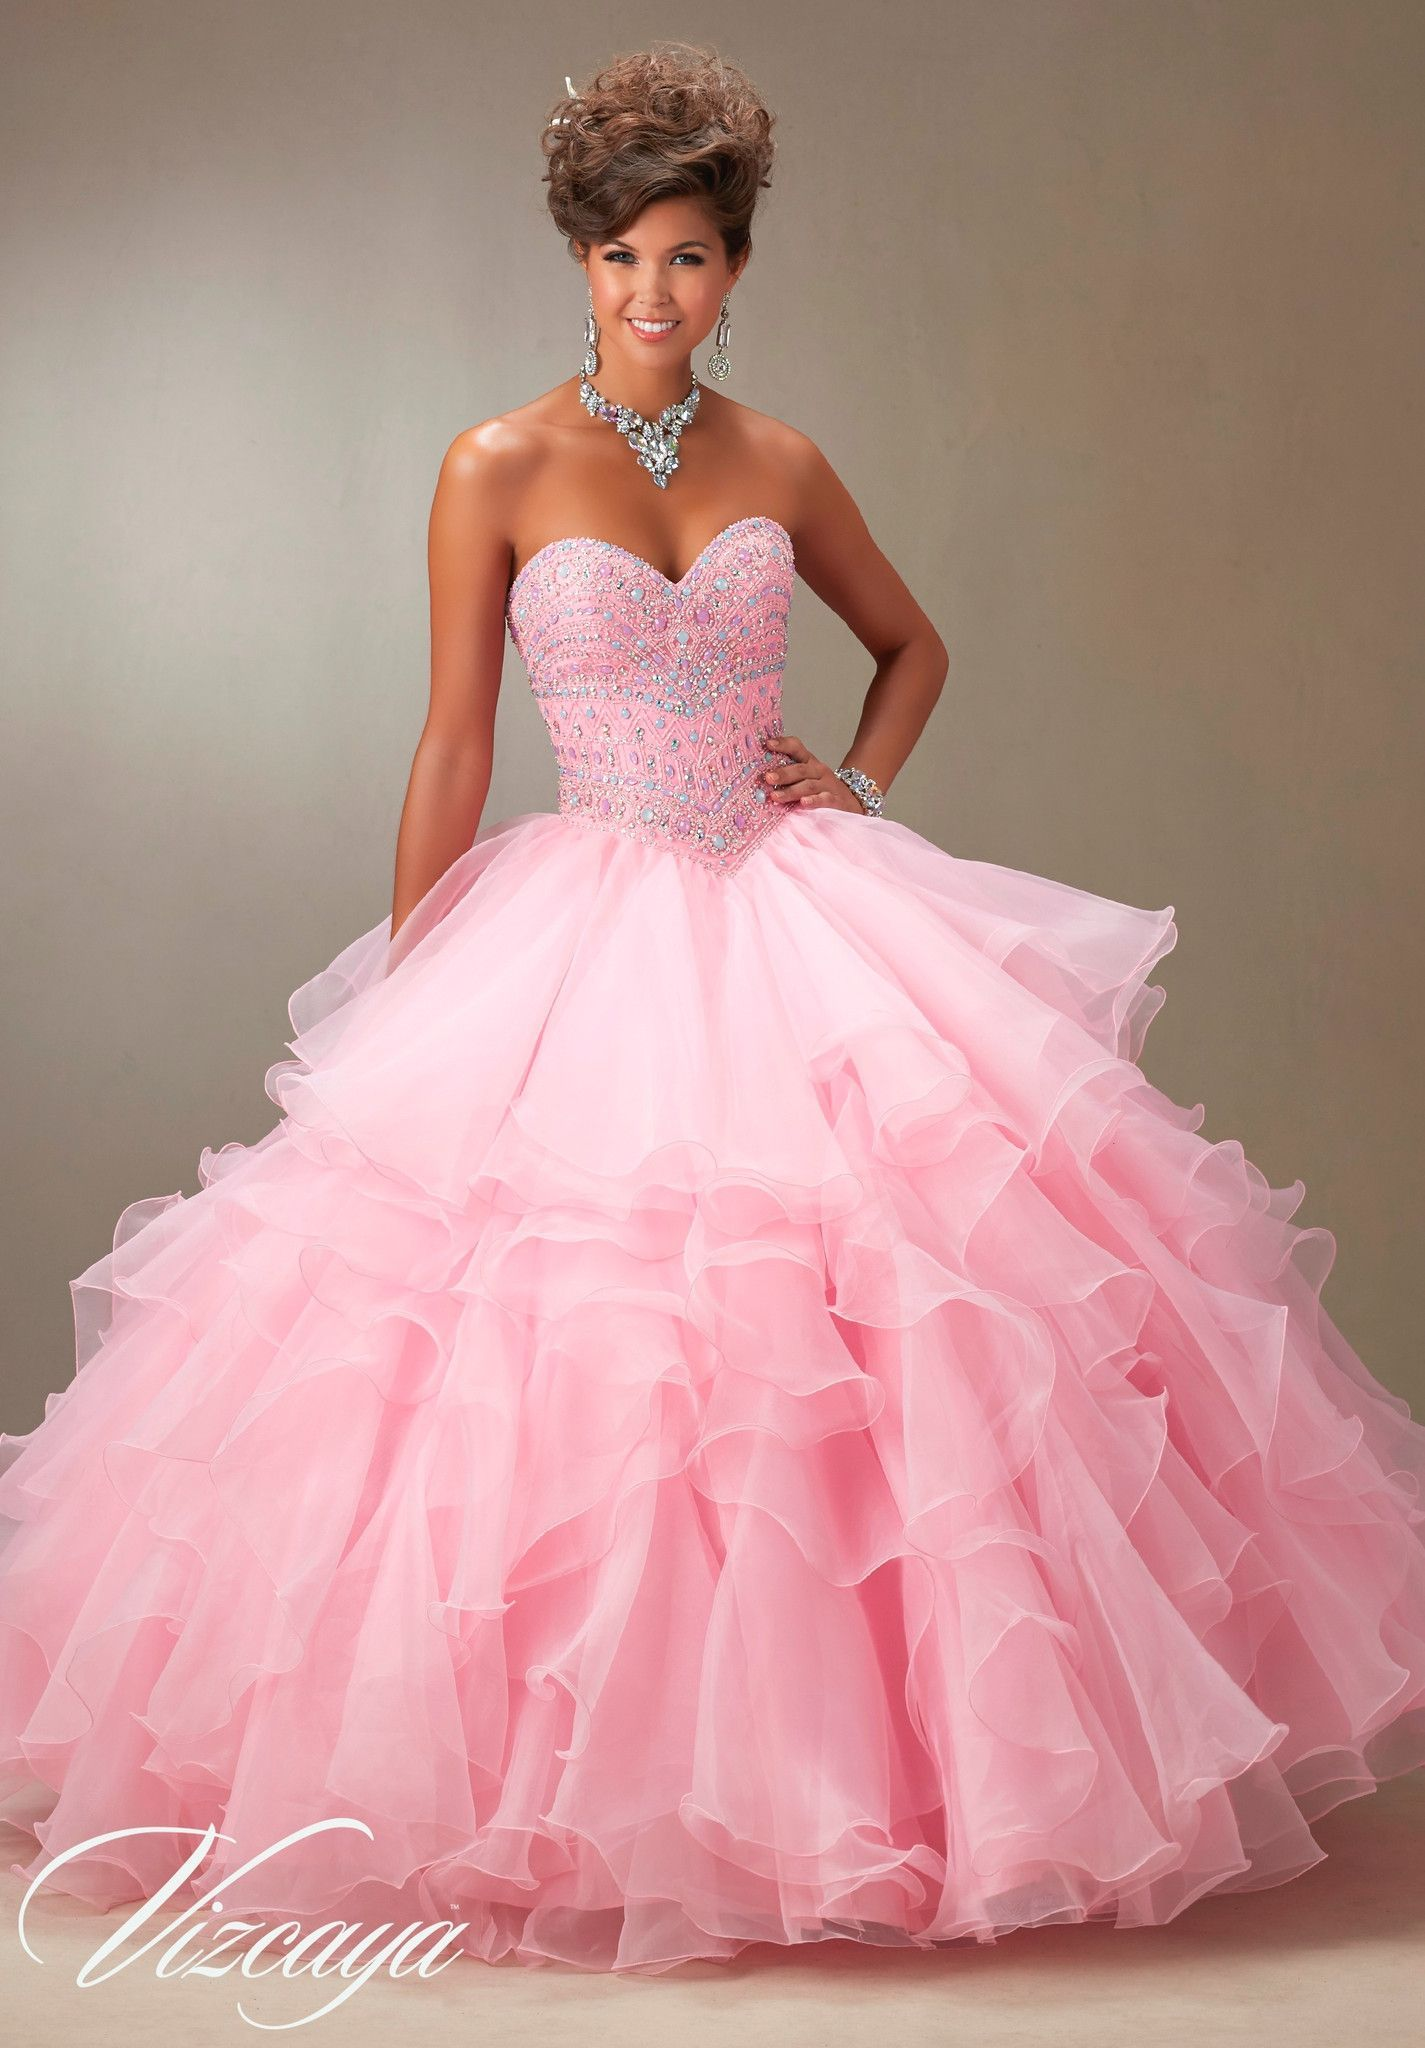 Mori Lee Quinceanera Dress 89061 | Vestidos de baile largos, 15 años ...